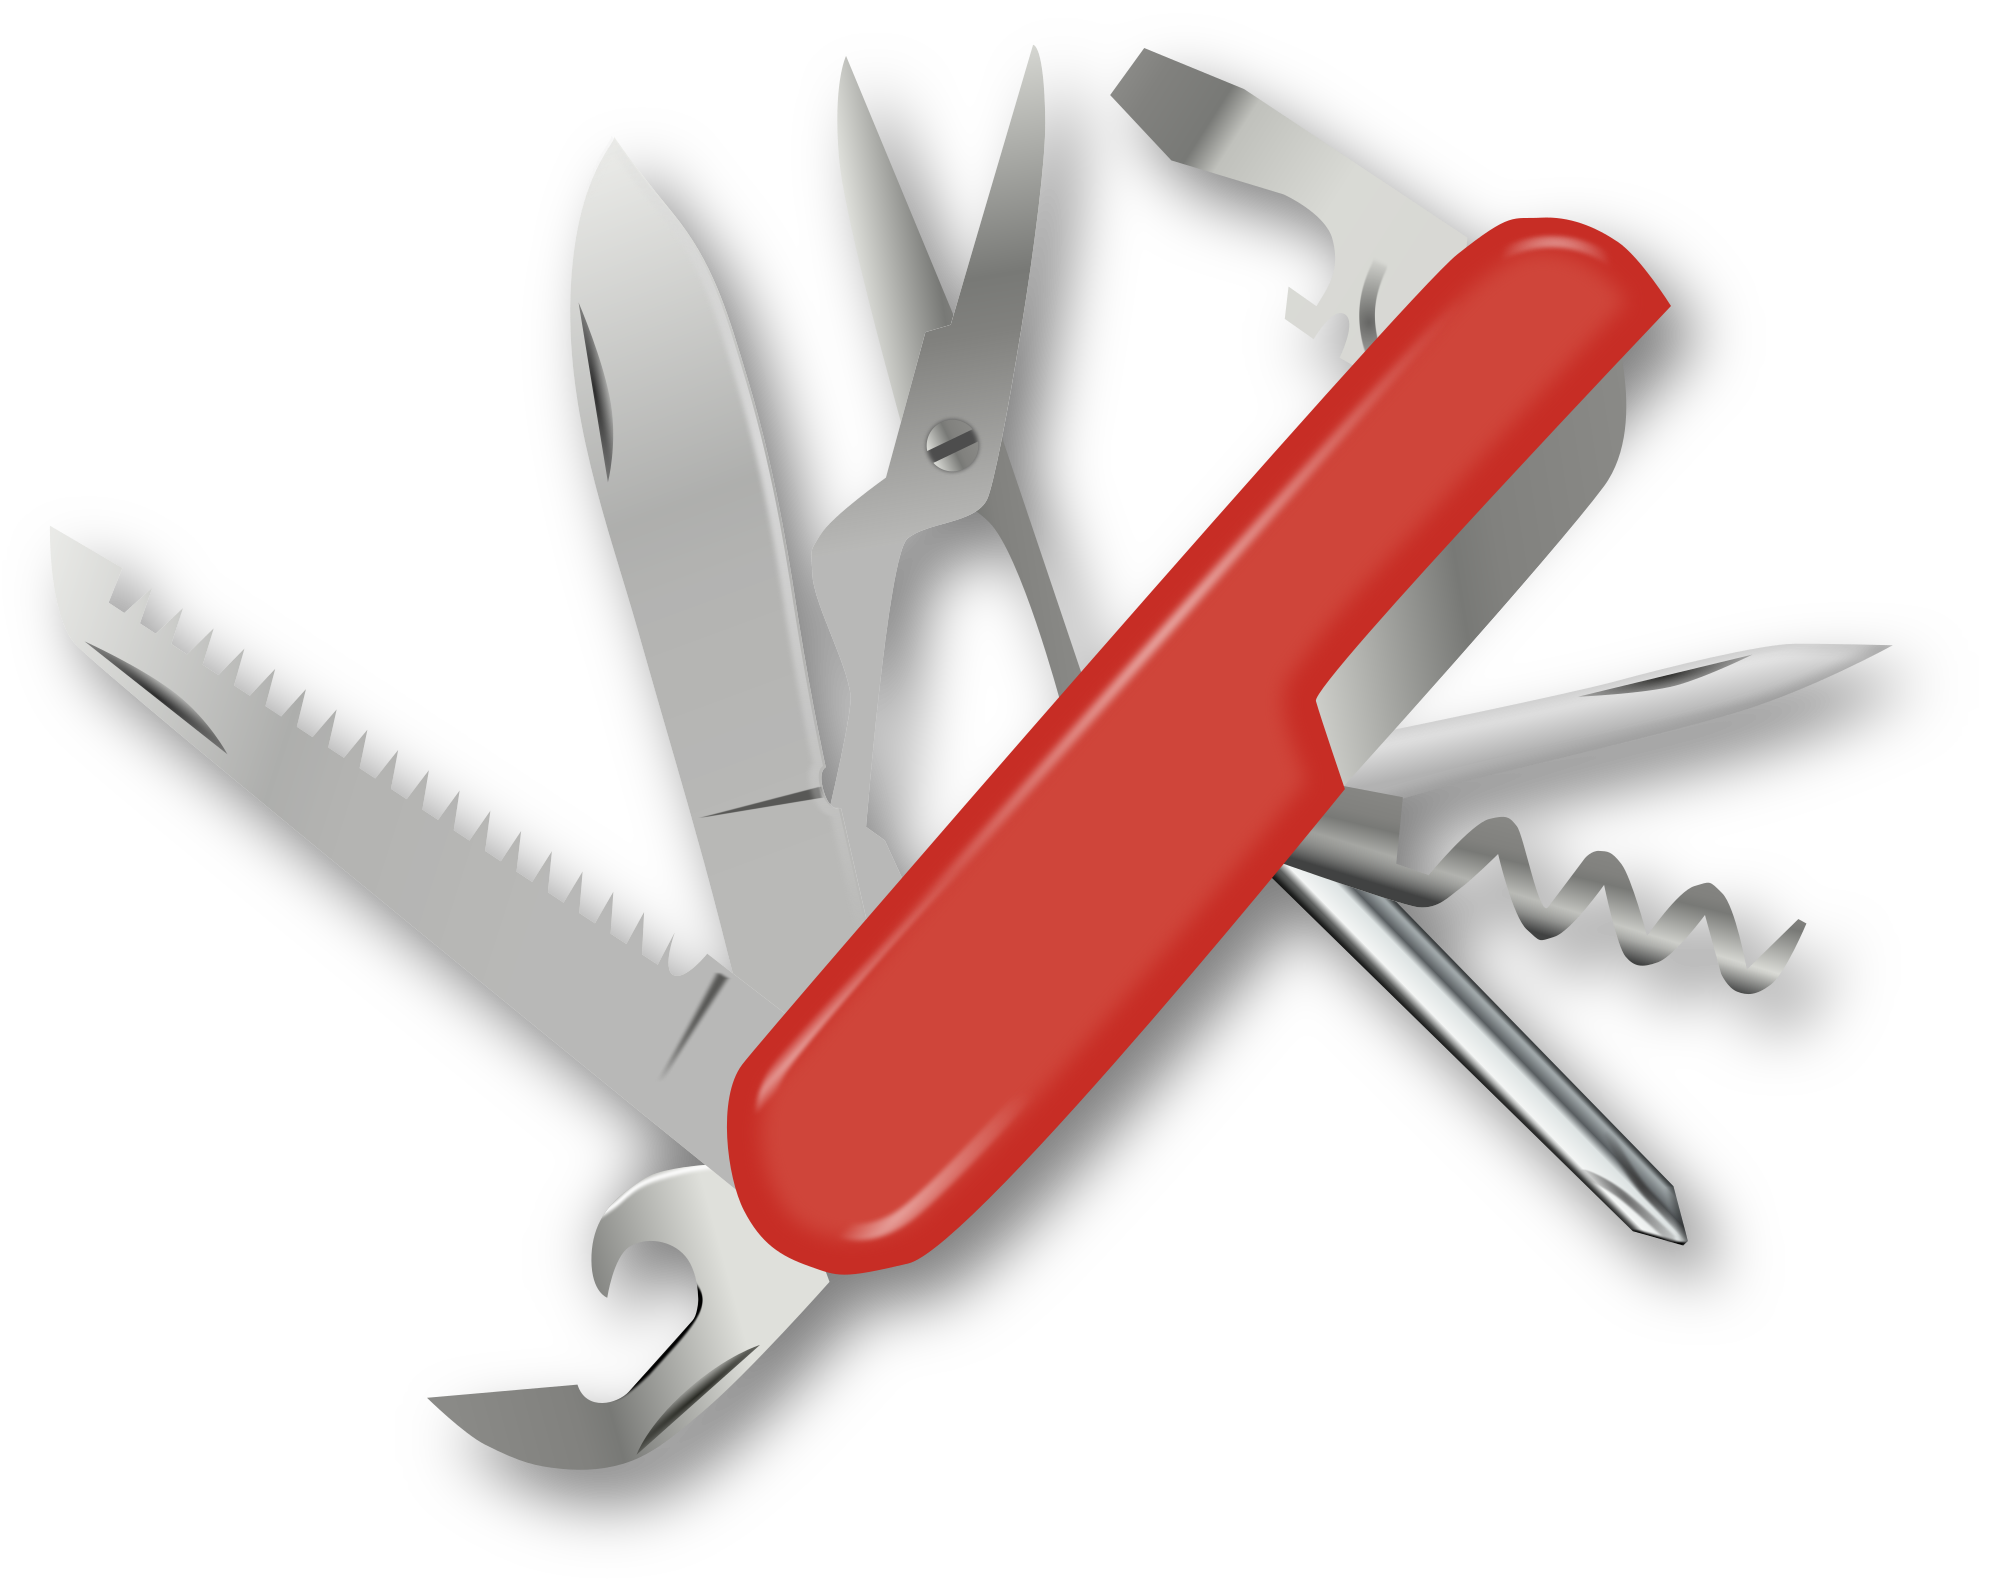 Knife svg swiss army. File wikimedia commons open